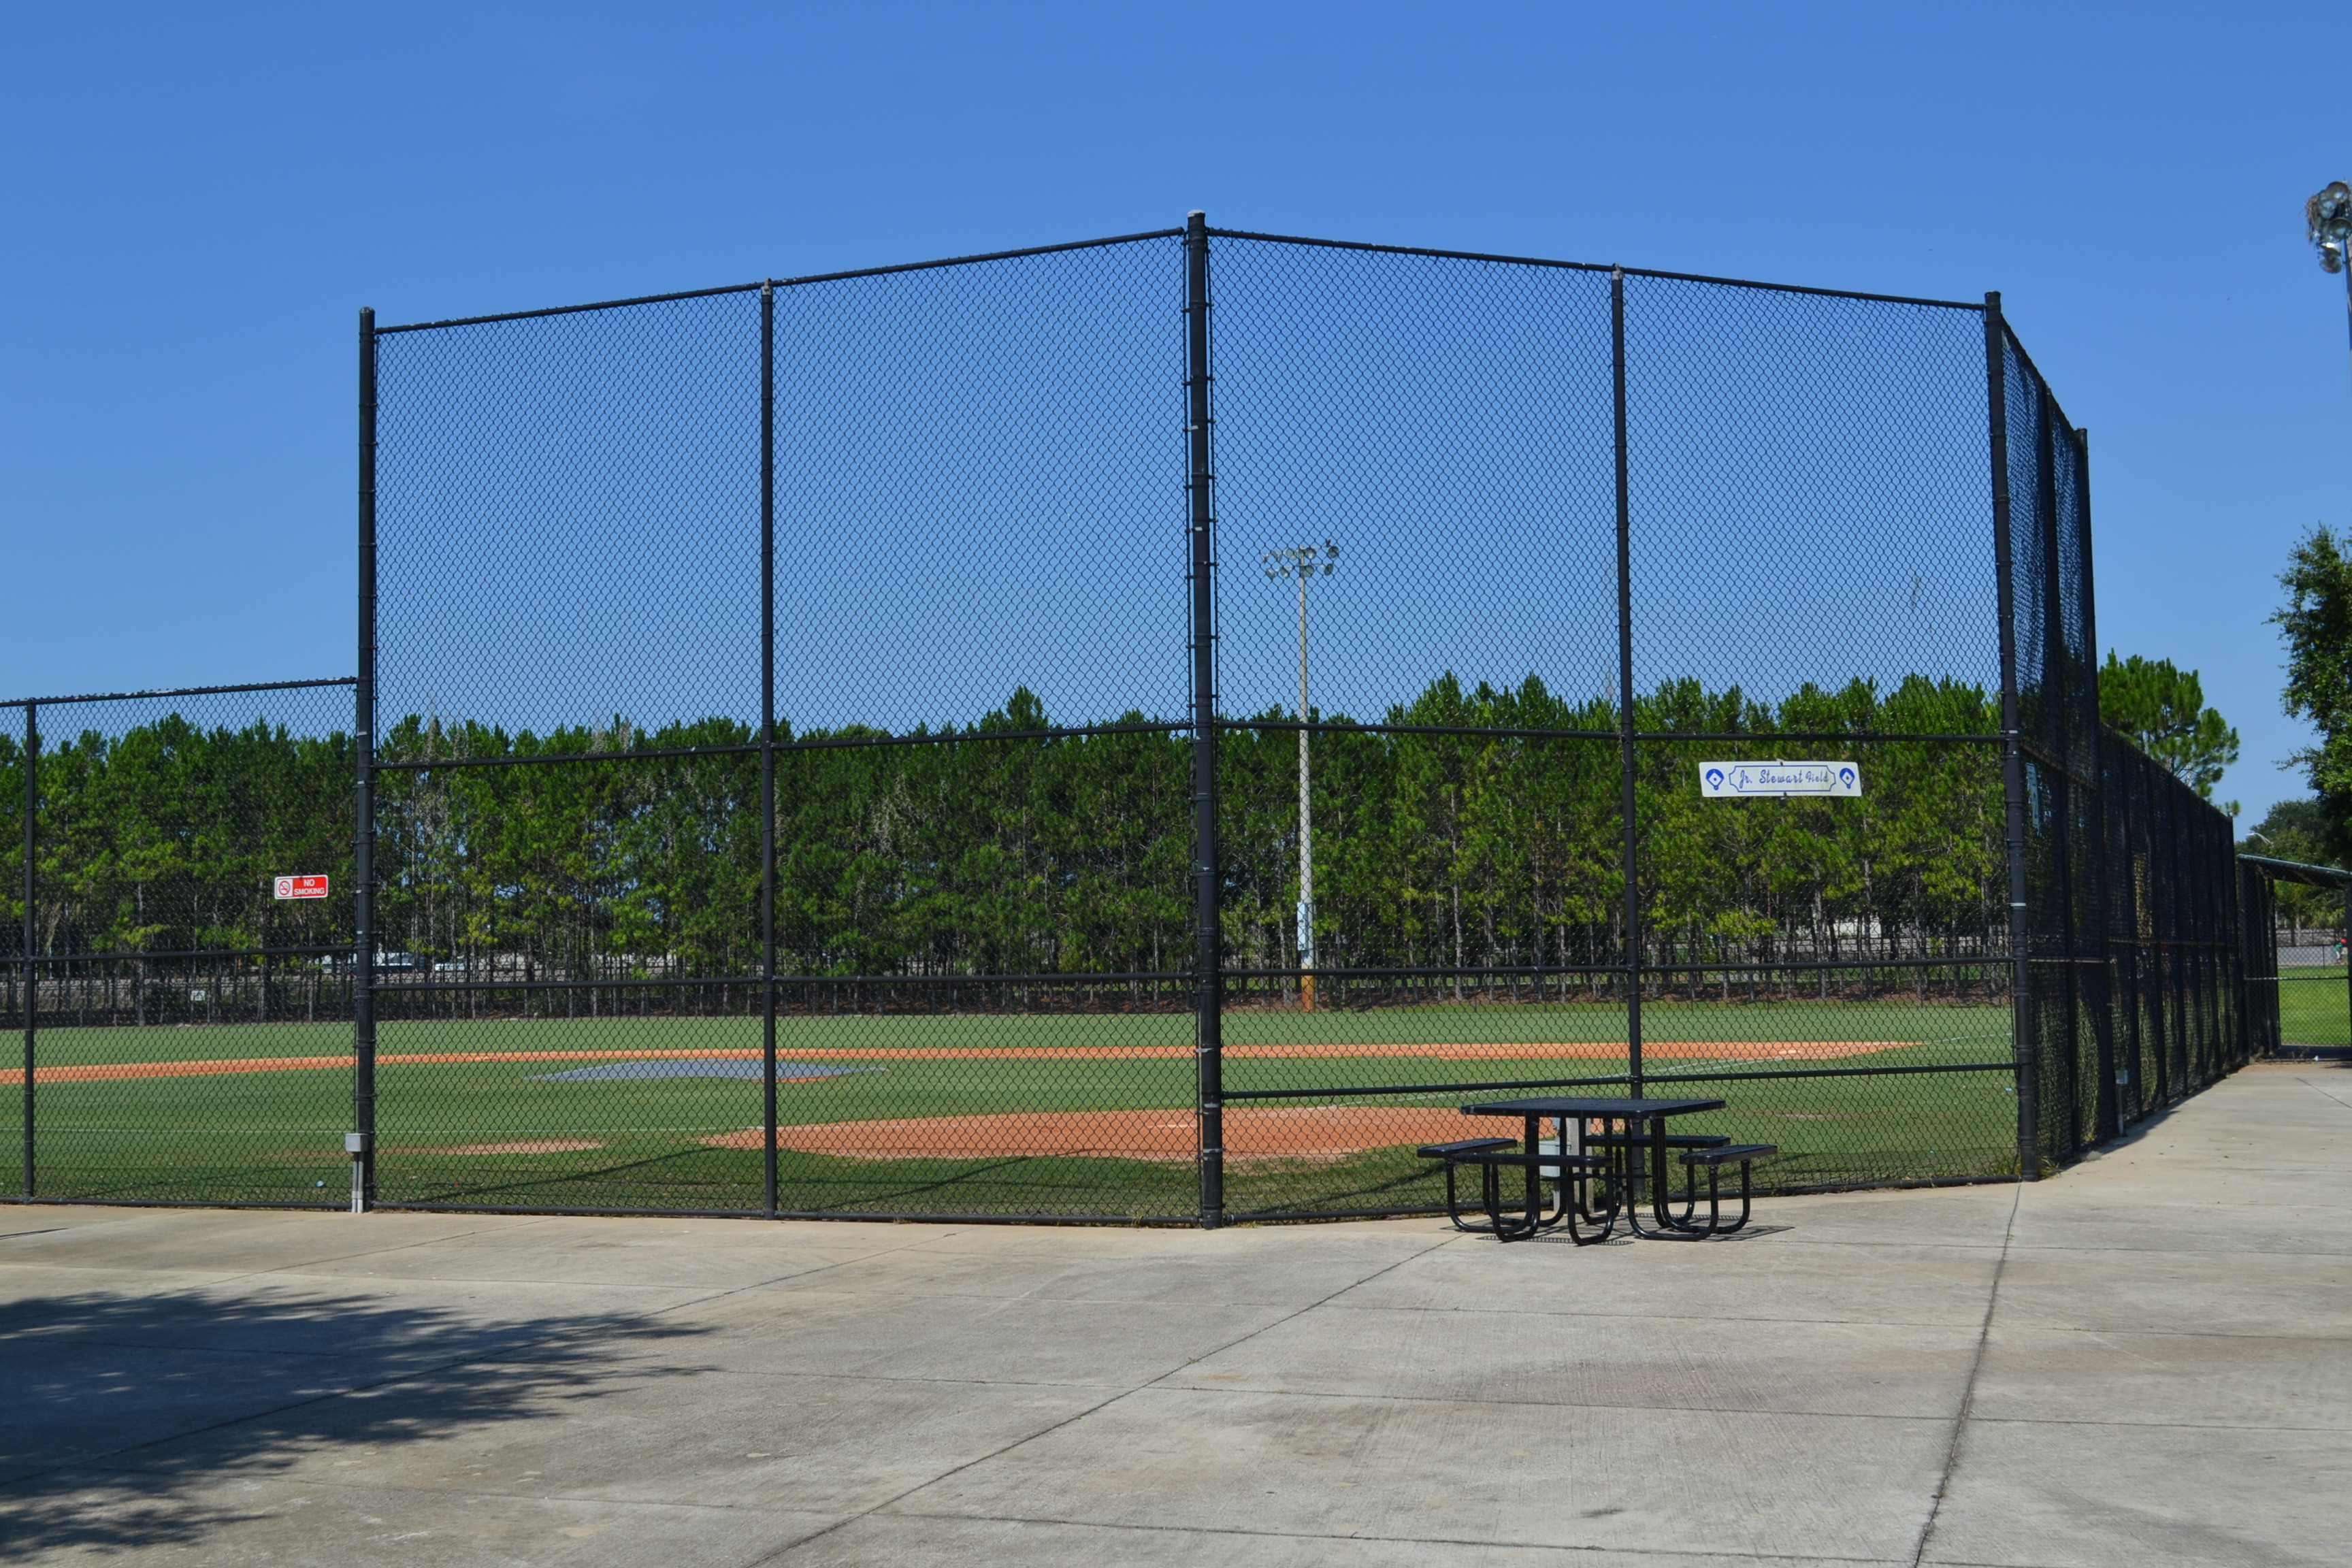 A baseball field at Lake Bonny Park